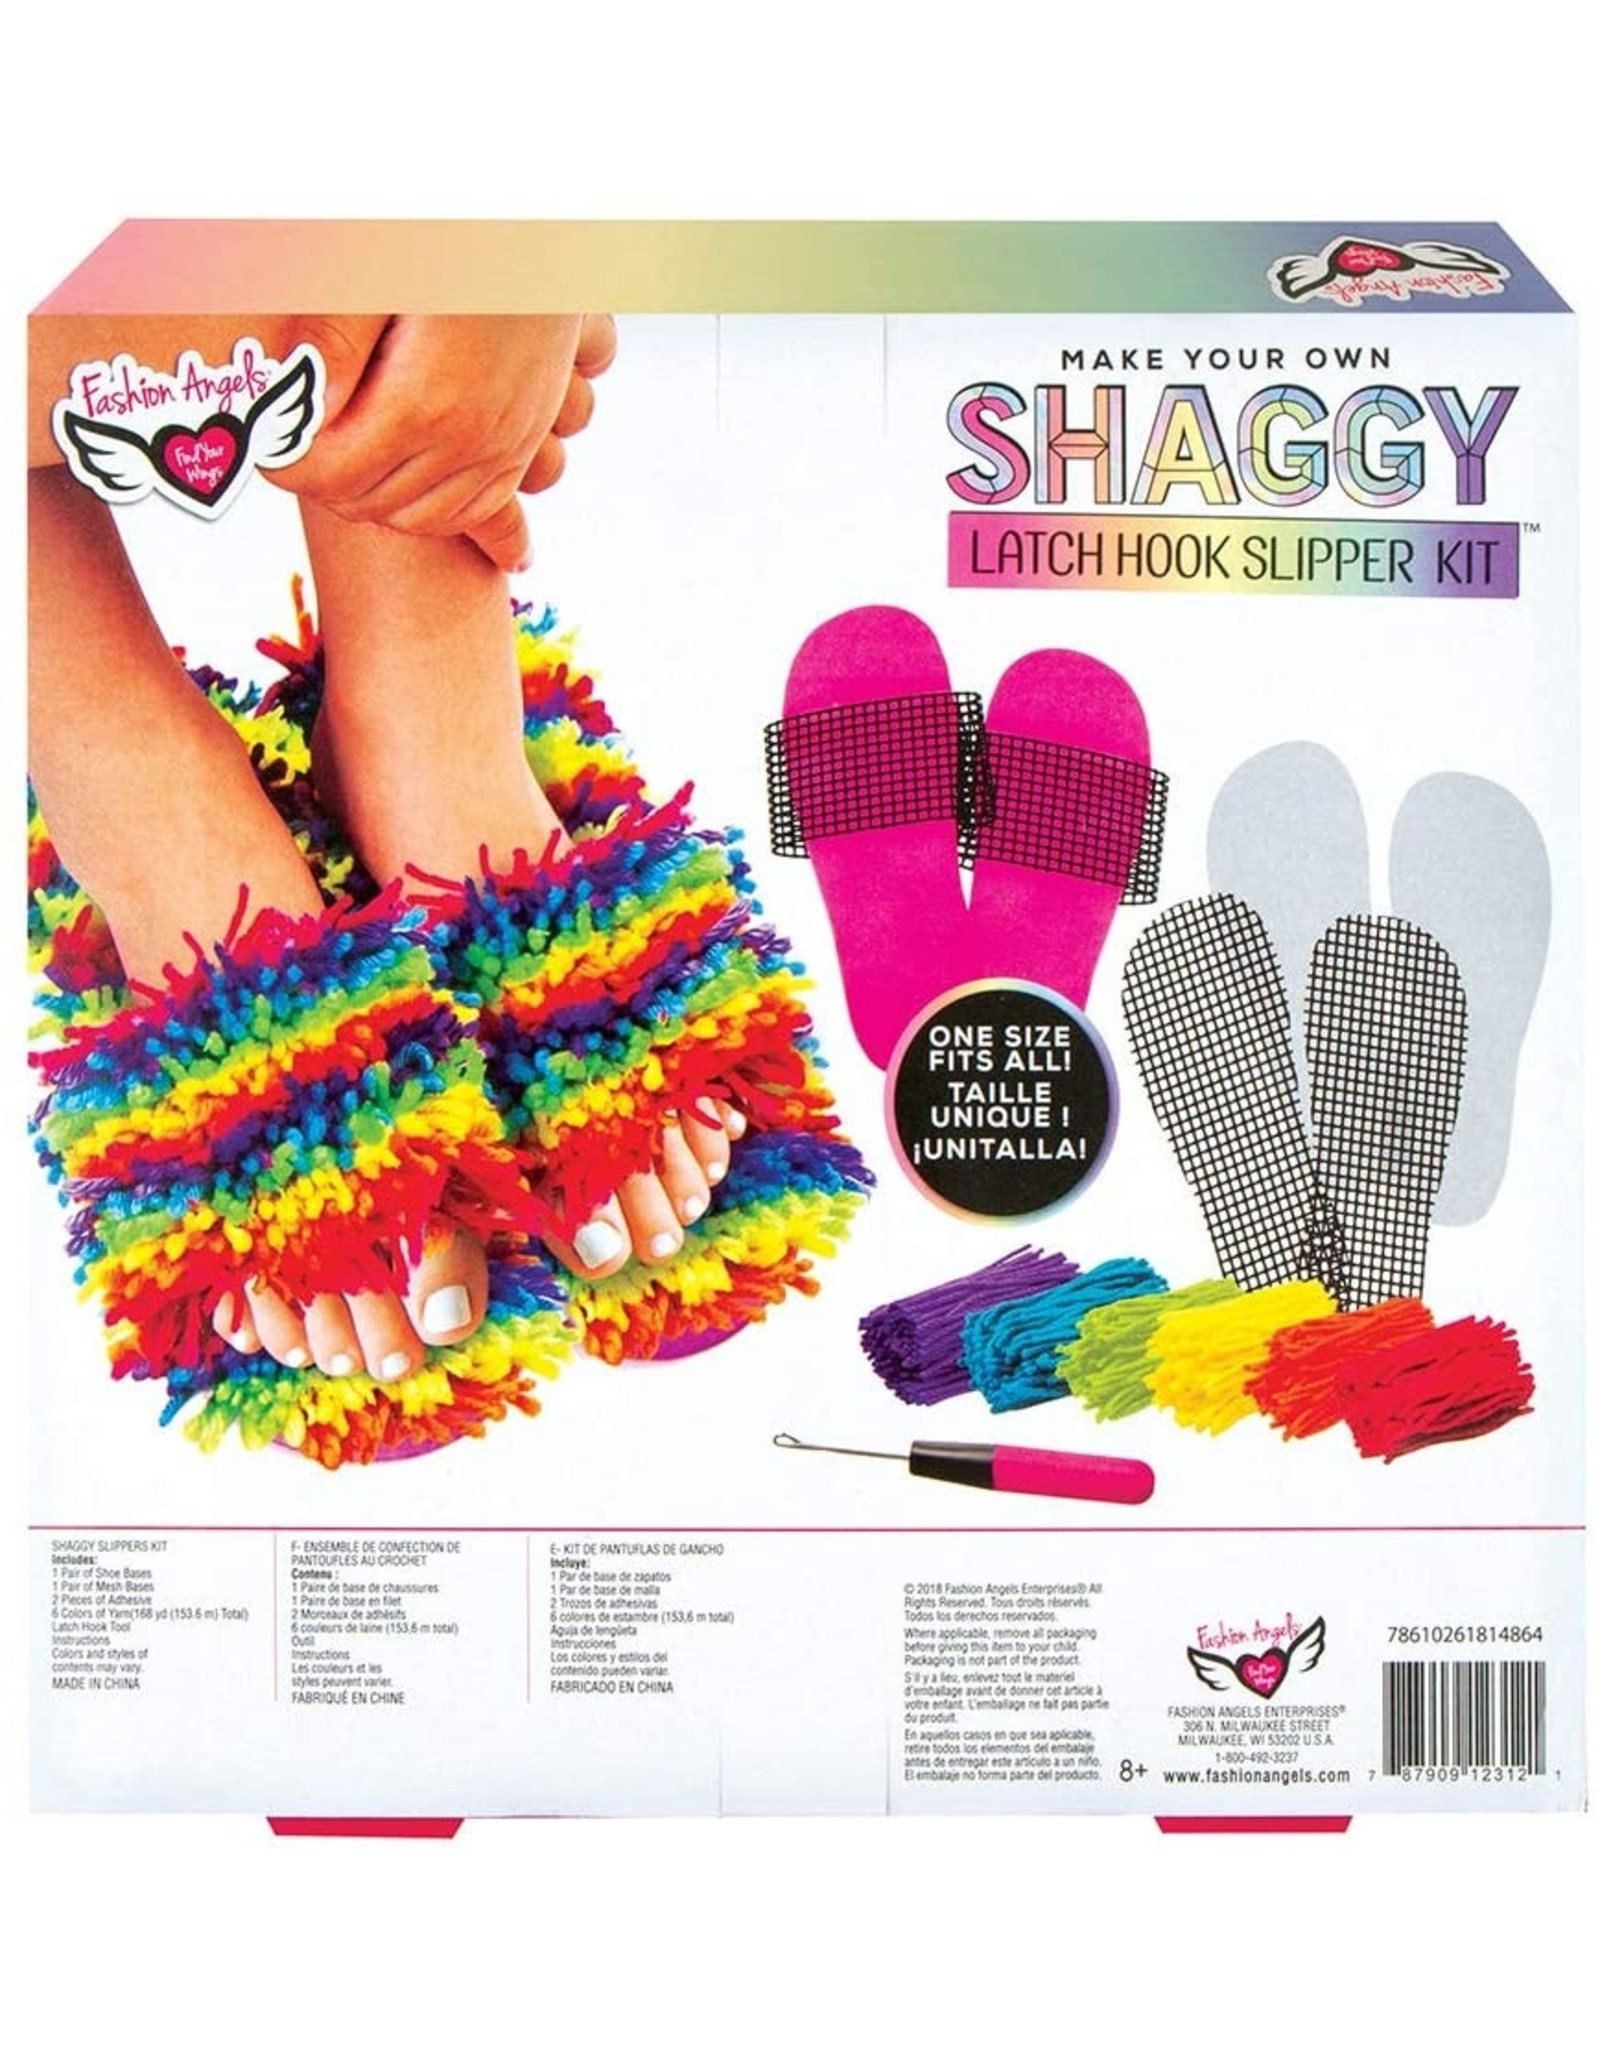 Latch Hook Slipper Kit - (one size fits all)